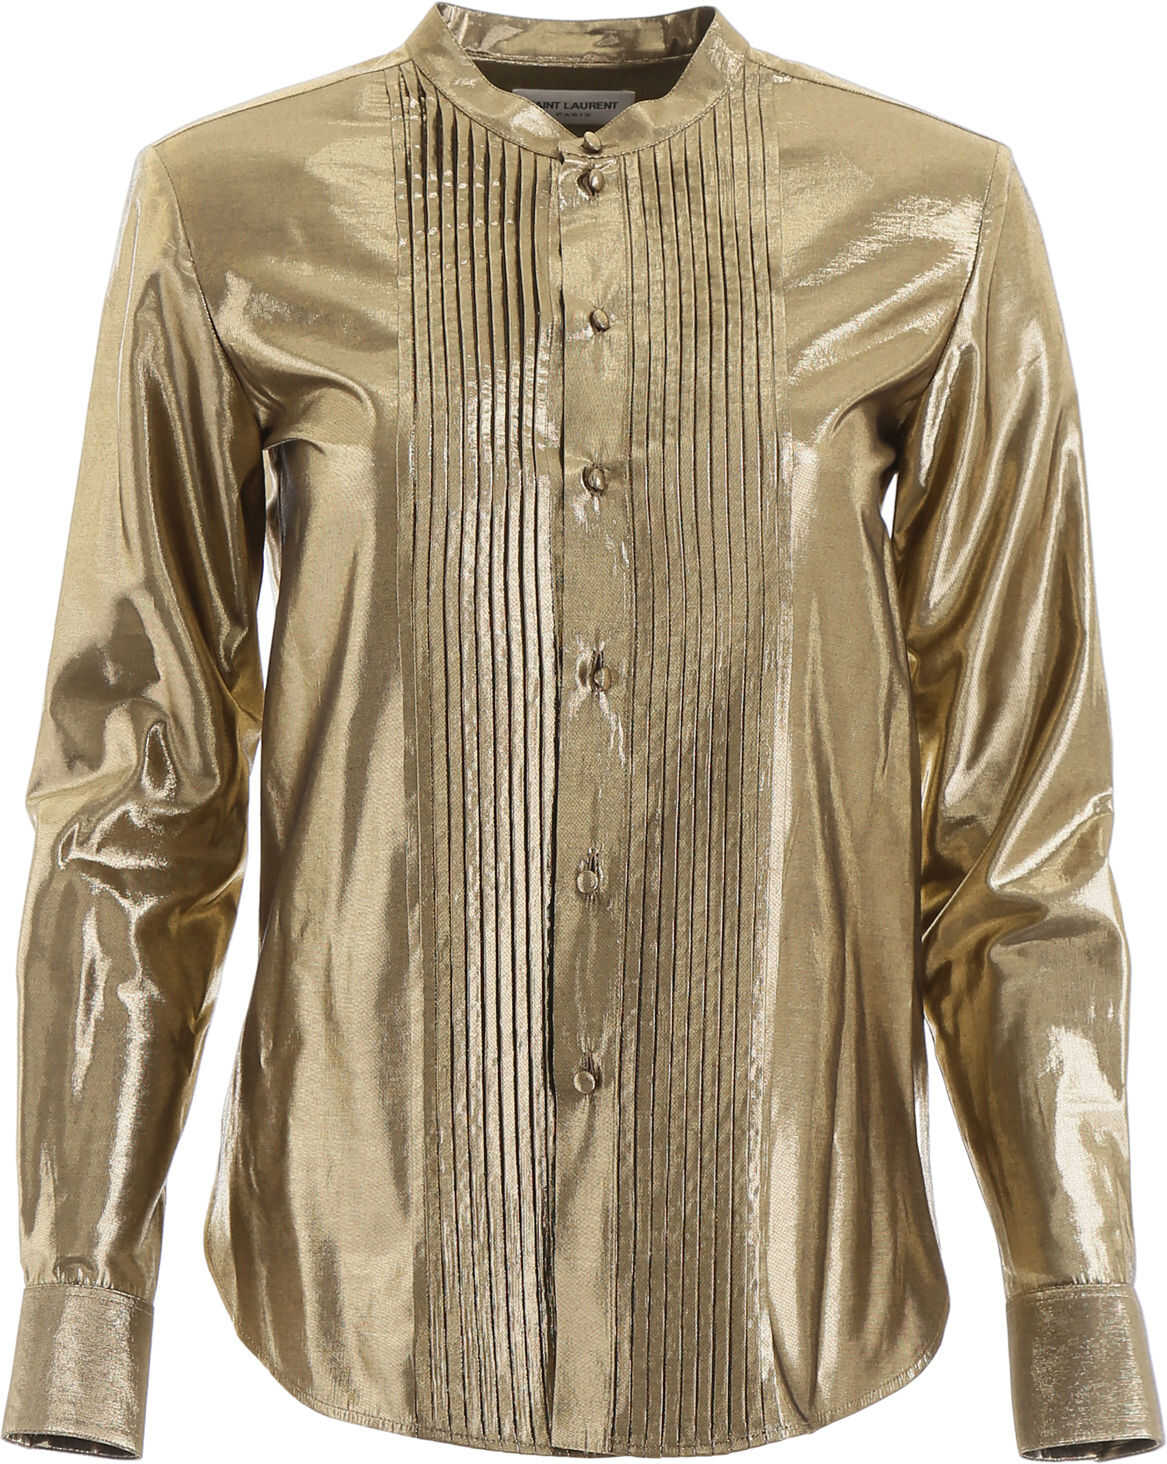 Saint Laurent Lurex Shirt OR